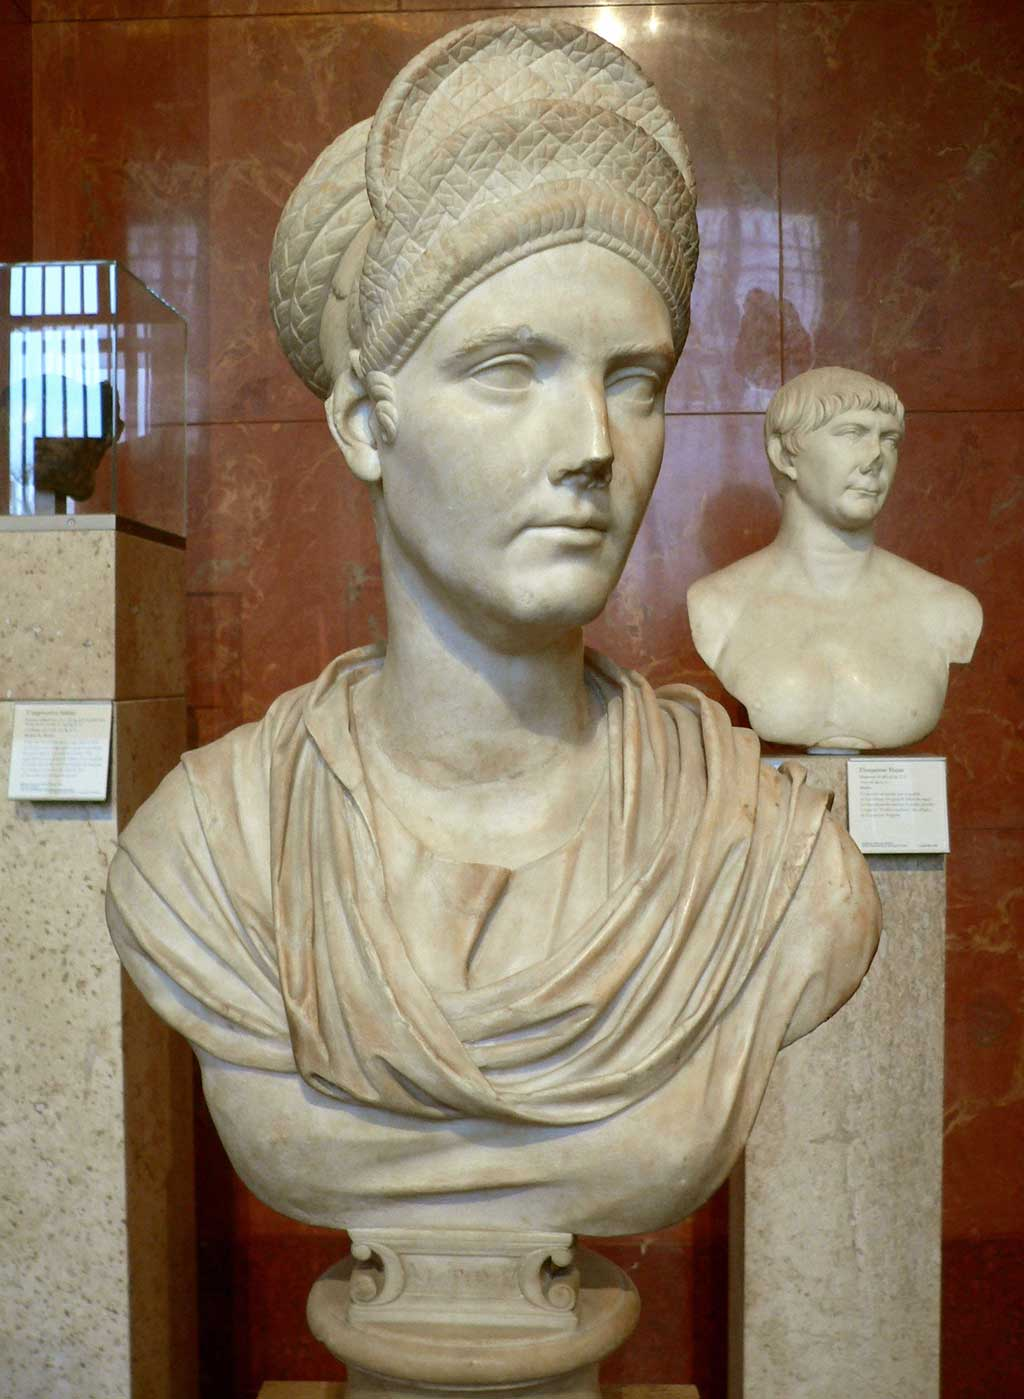 A bust of Trajan's Neice, Matidia. Like the Flavians, Matidia's hair stands in a stack, but unlike the Flavians, her hair stands in flat layers than in curls.